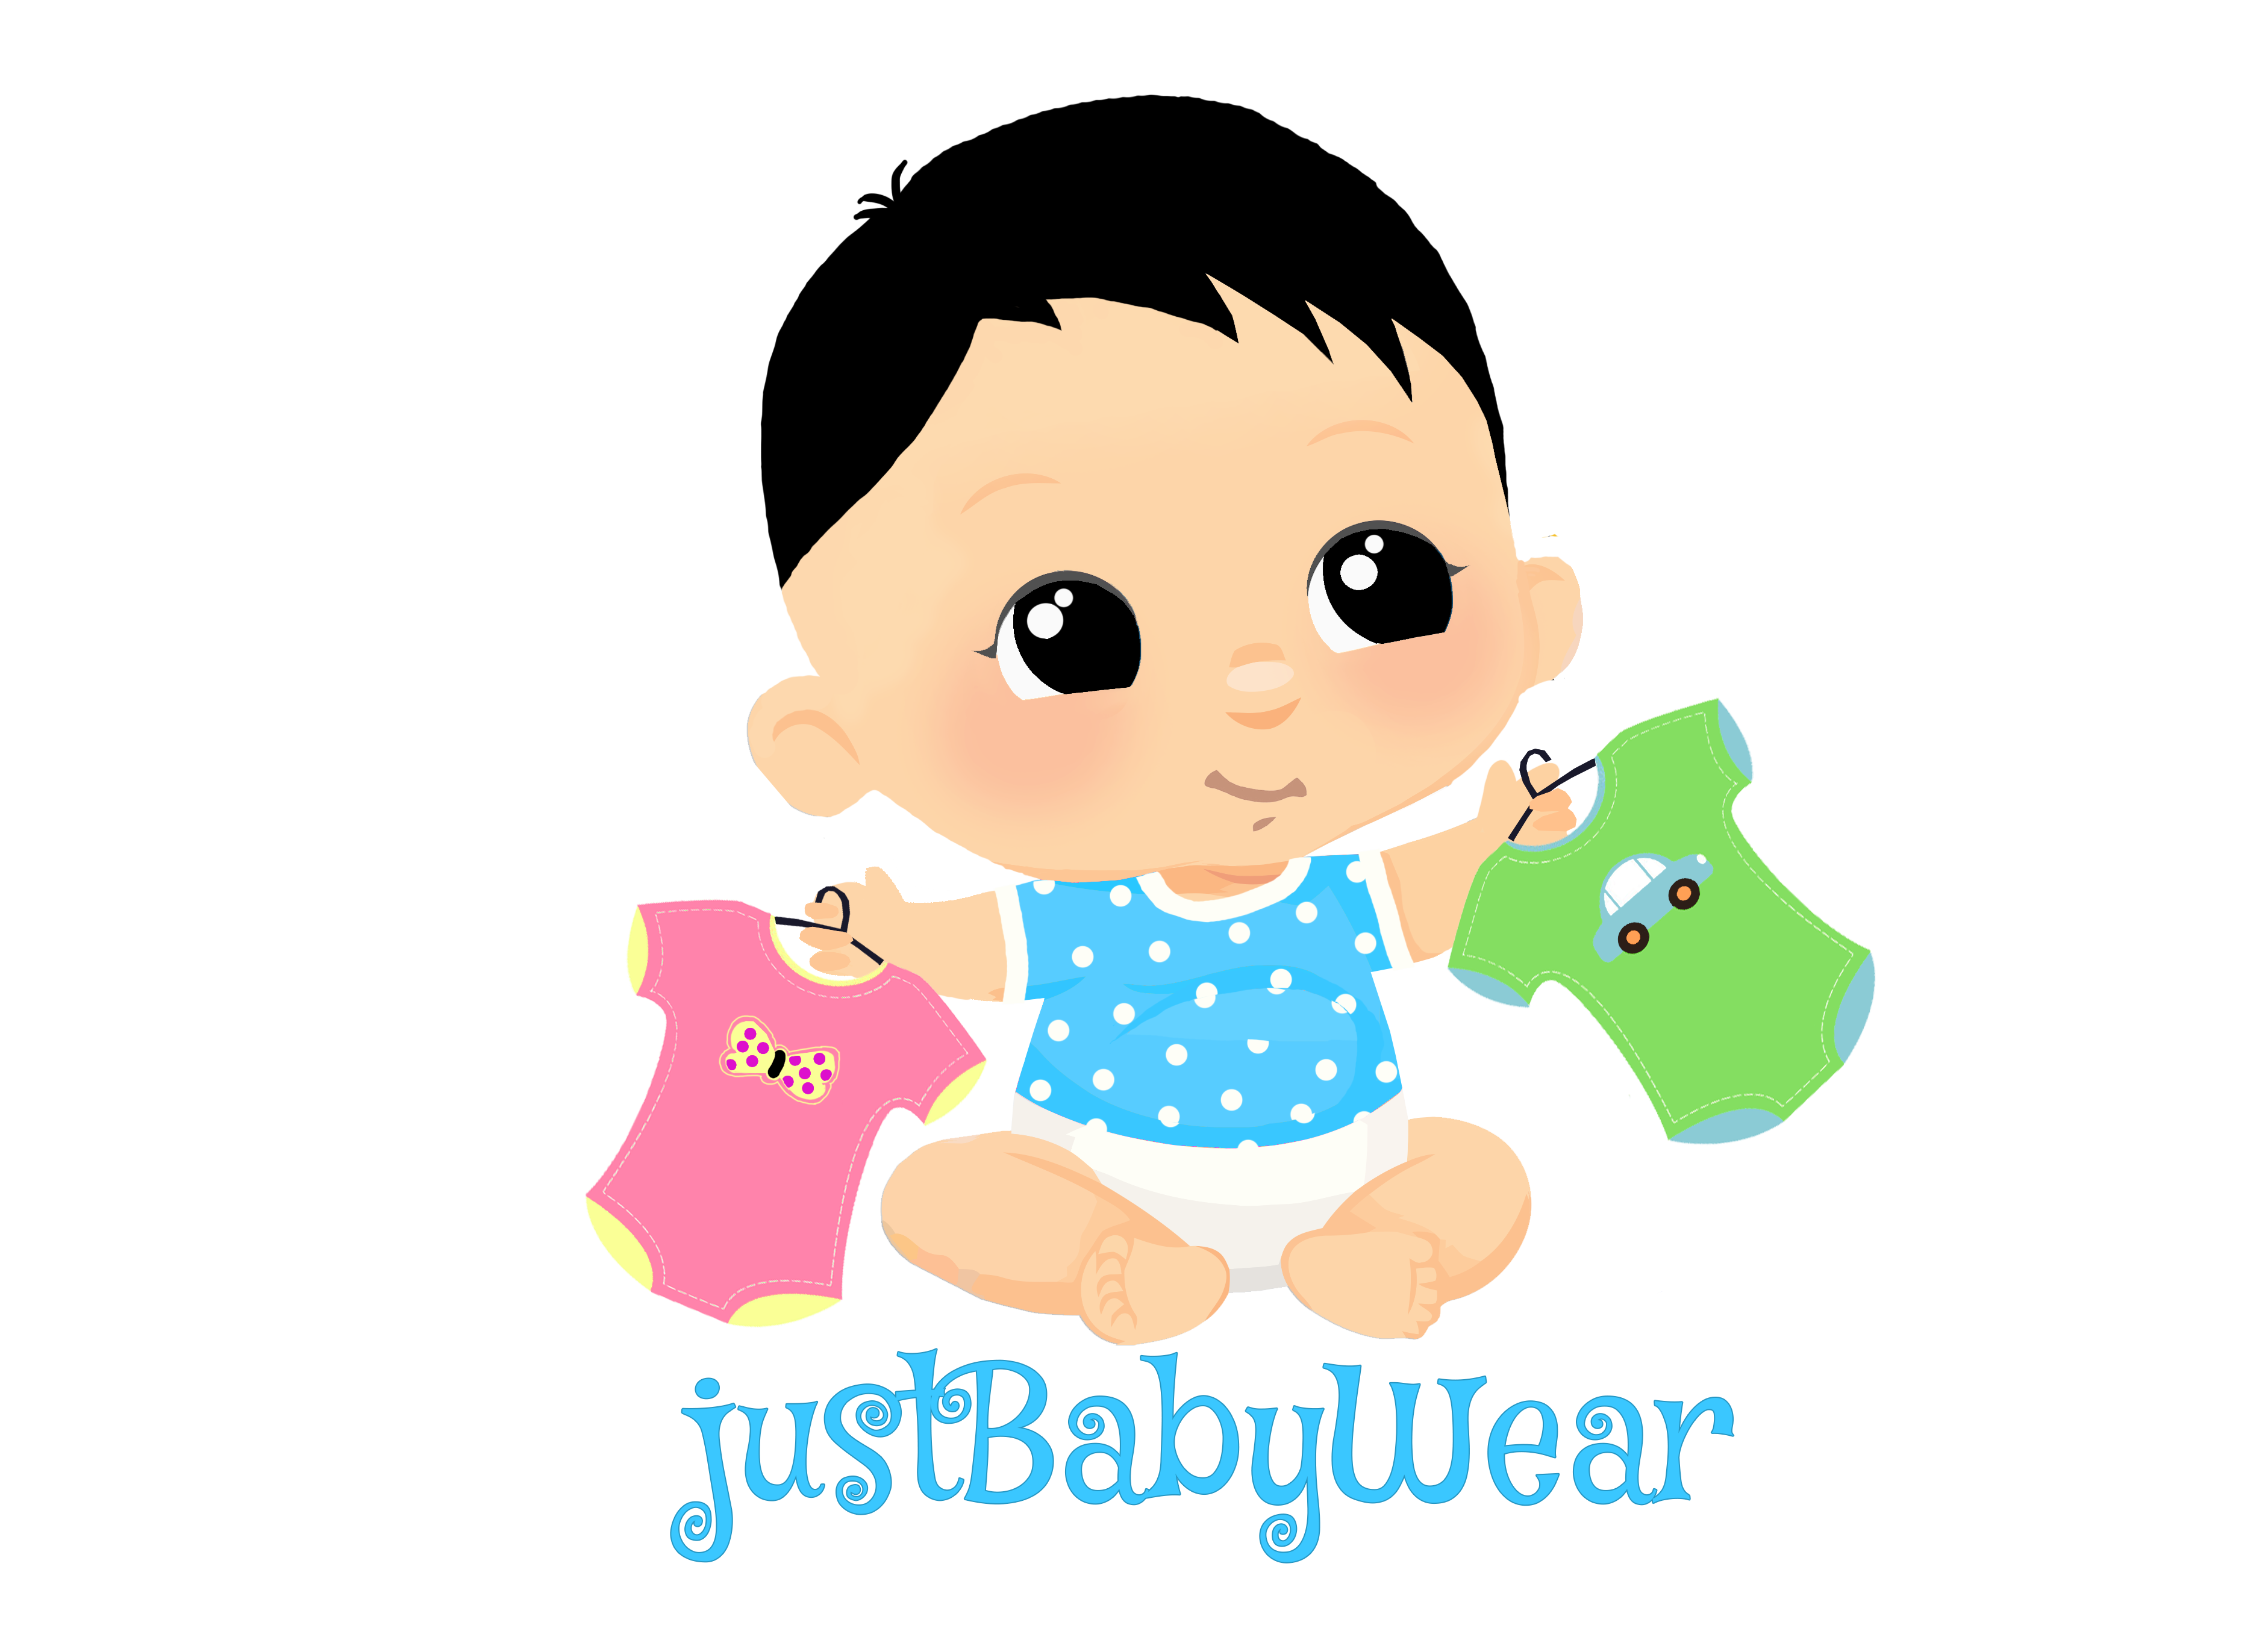 make a super cute Baby logo for your company